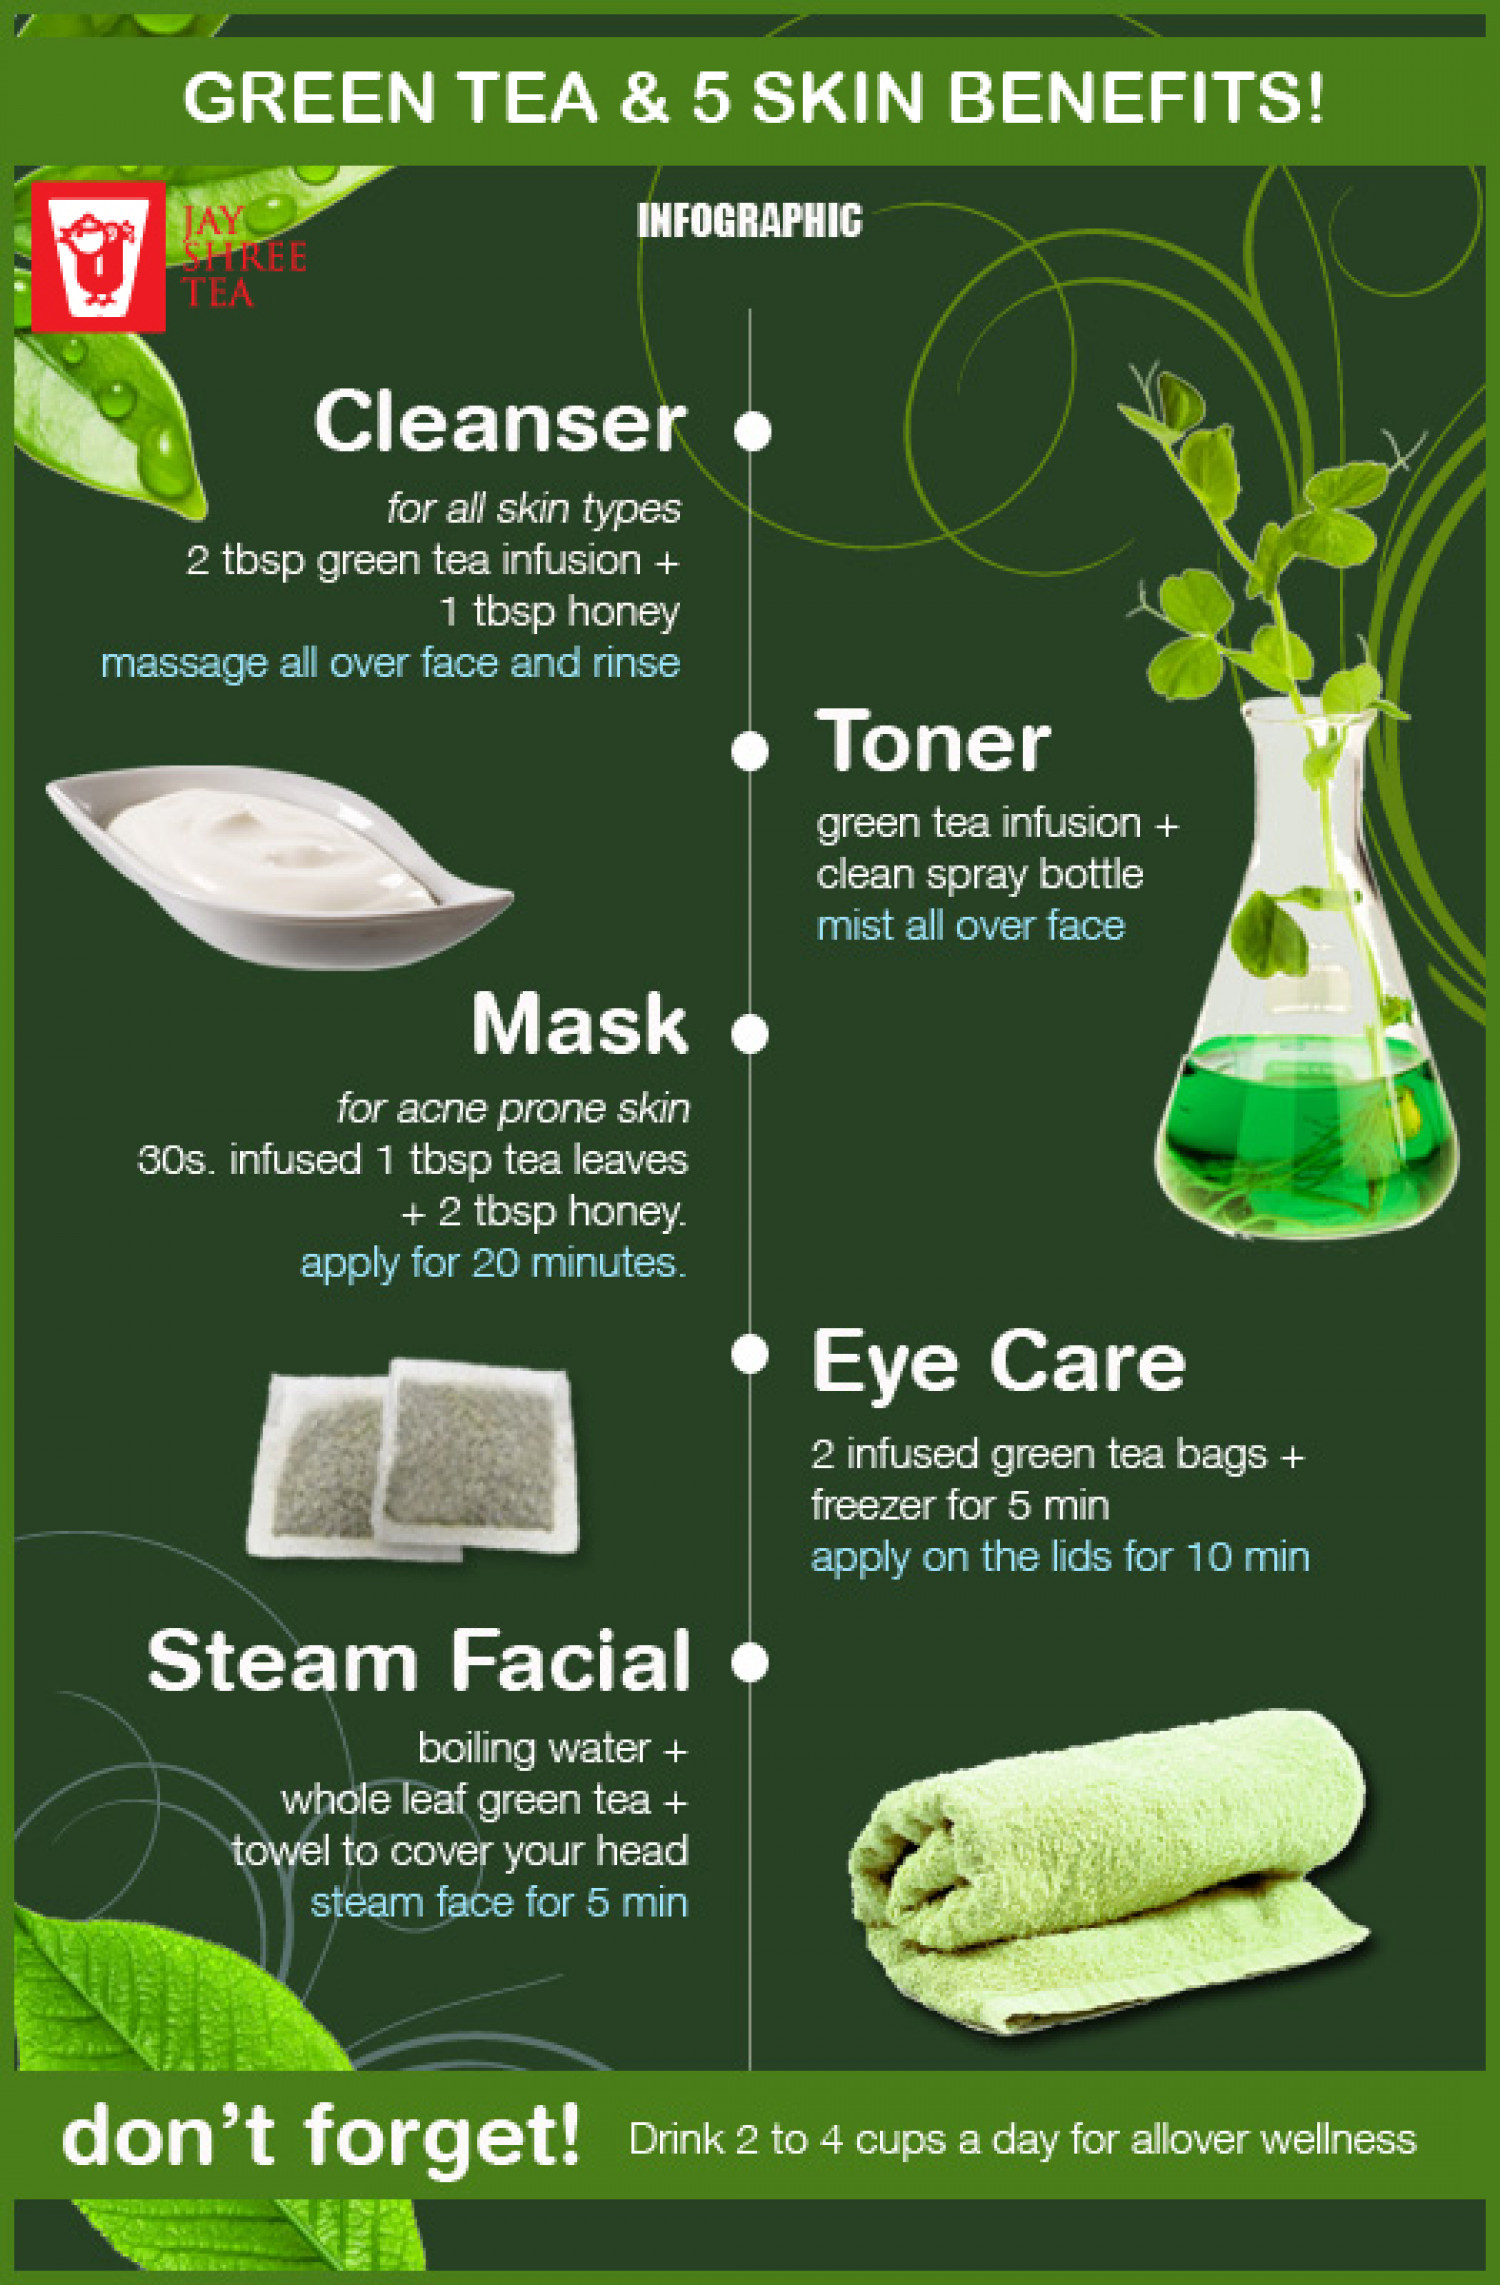 green tea and 5 skin benefits | visual.ly